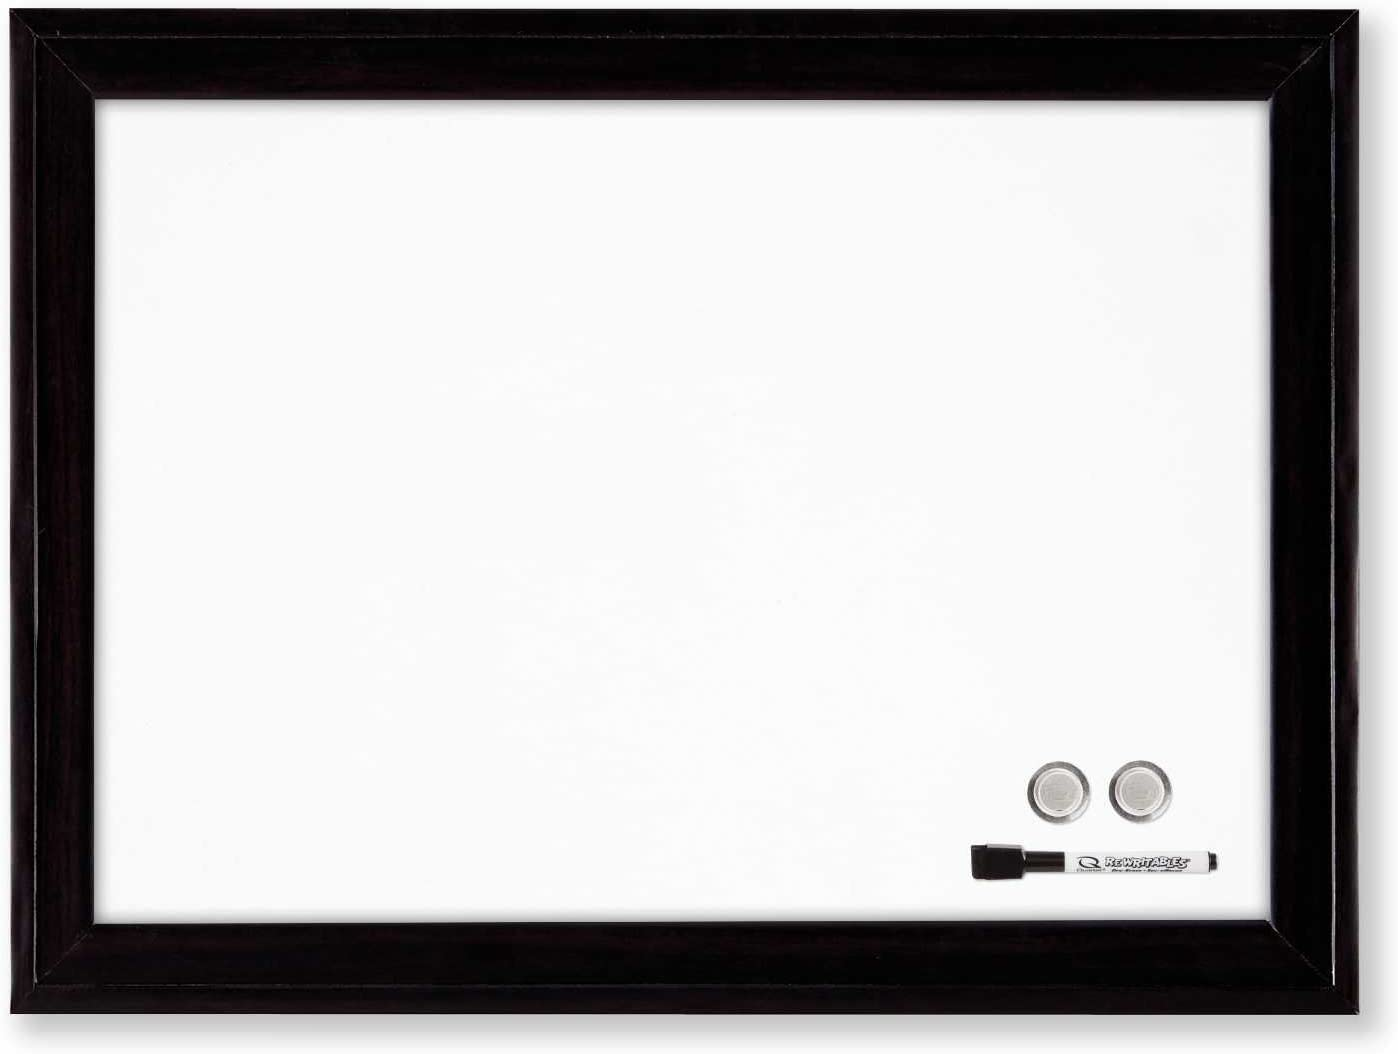 """Quartet Magnetic Whiteboard, 11"""" x 17"""" Small White Board for Wall, Dry Erase Board for Kids, Perfect for Home Office & Home School Supplies, Dry Erase Marker, Magnets, Black Frame (79280)"""